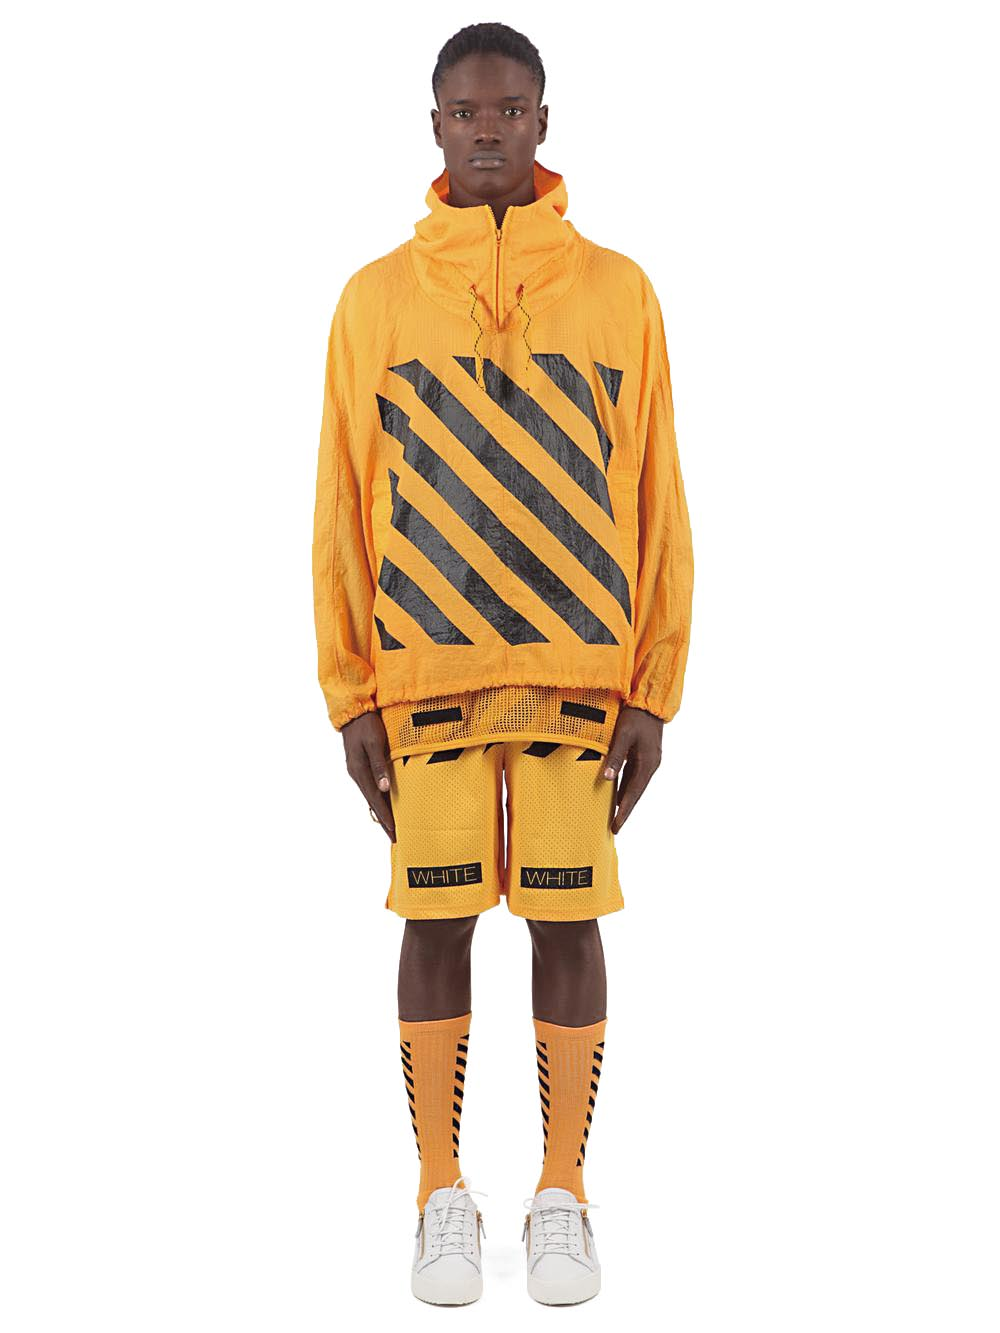 Look from Off-White c/o Virgil Abloh, spring/summer 2014